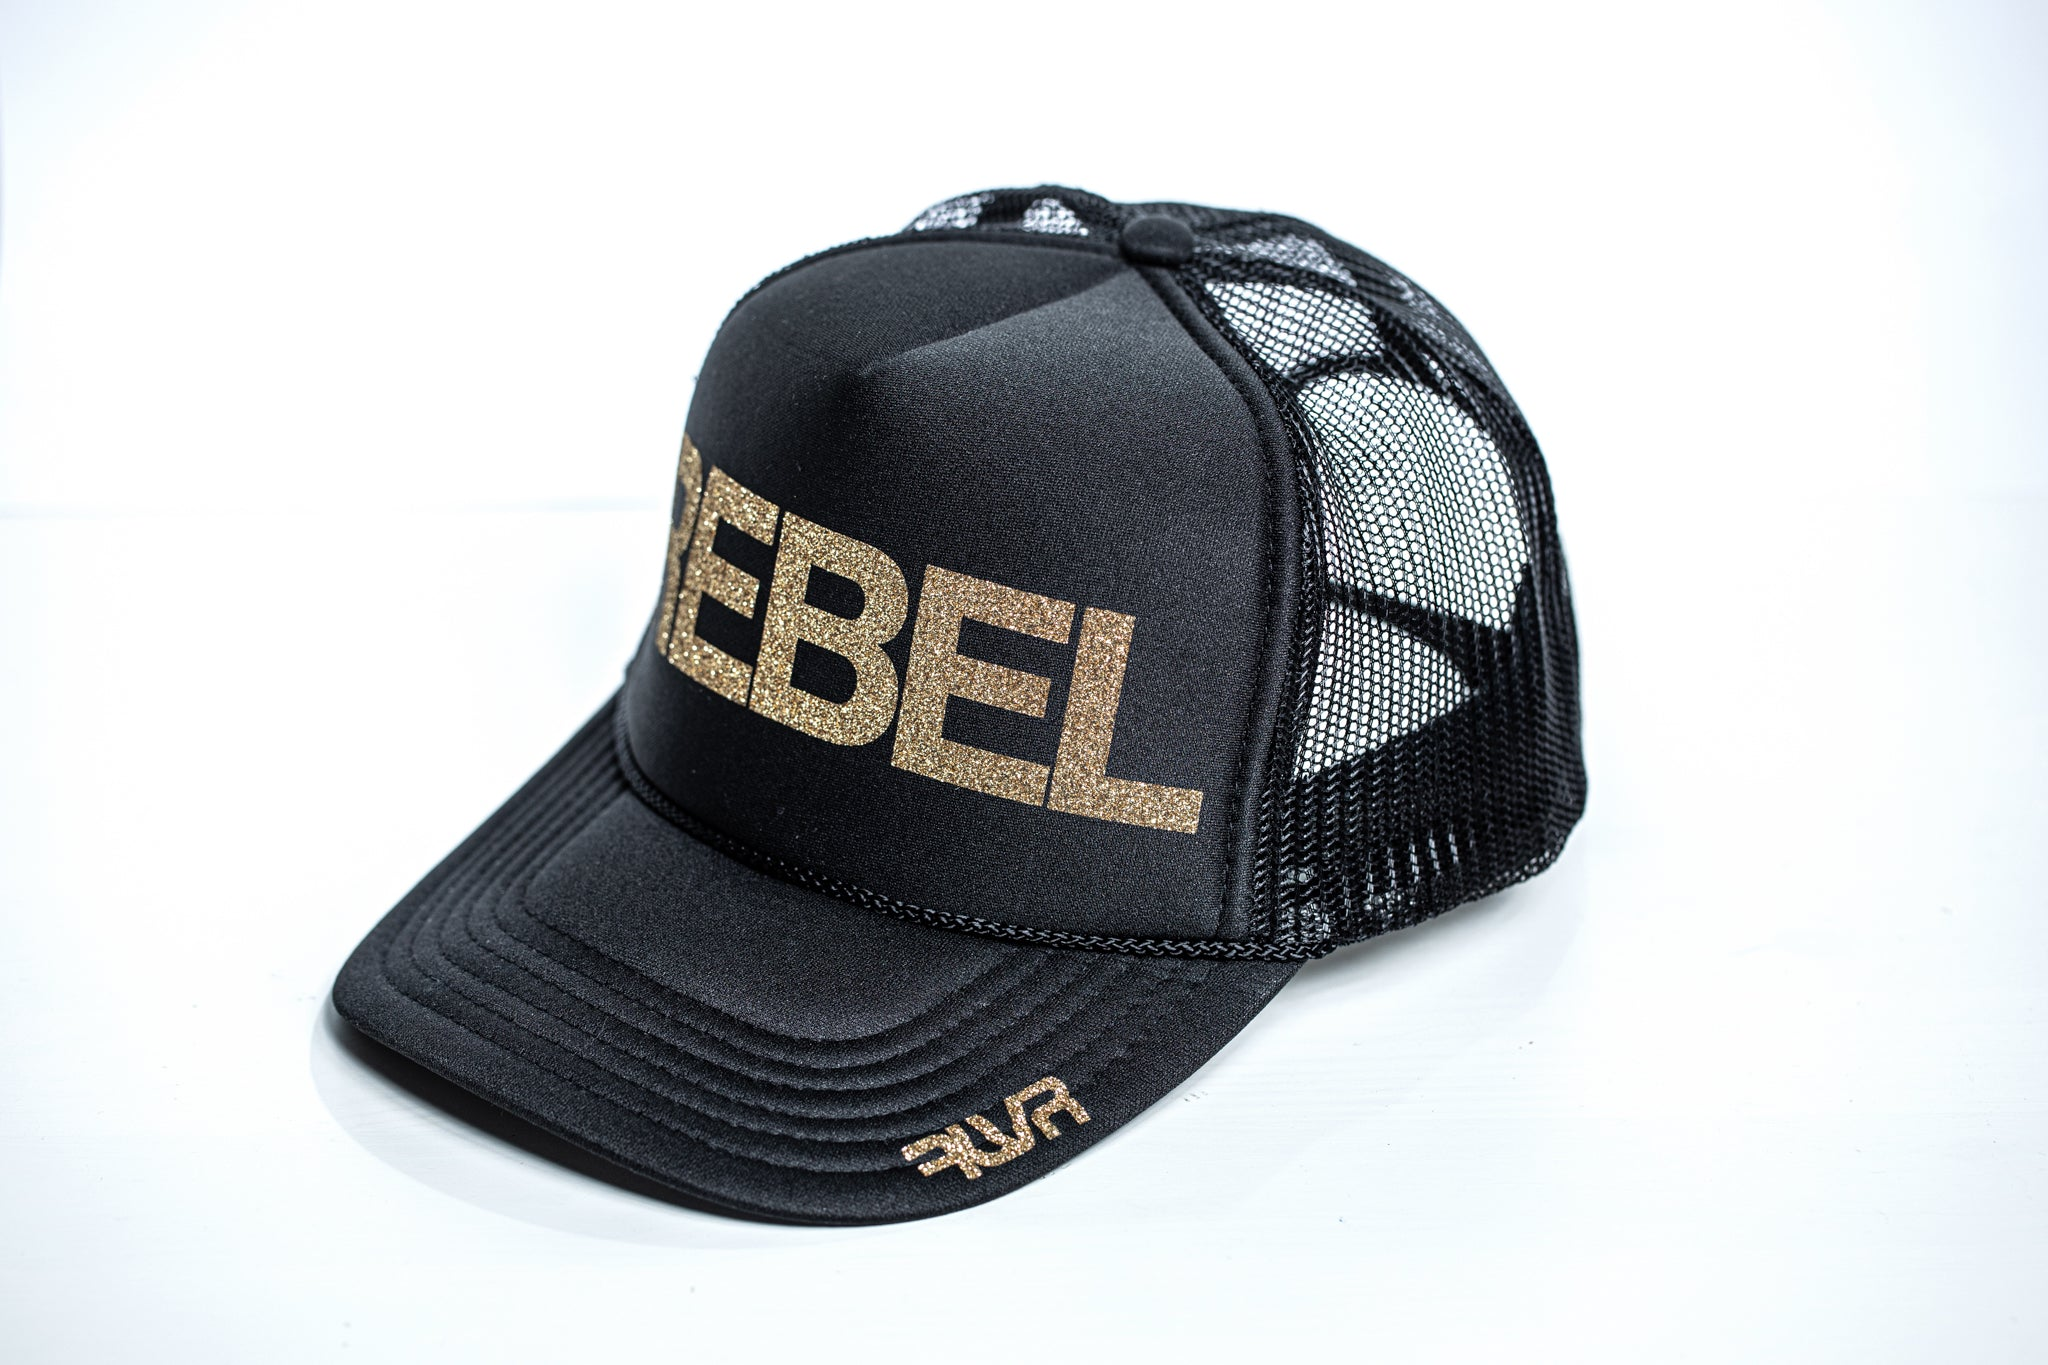 Everyone's Favorite Libbie/ EskyFlavor Limited Edition Collab Trucker Hat from Maui